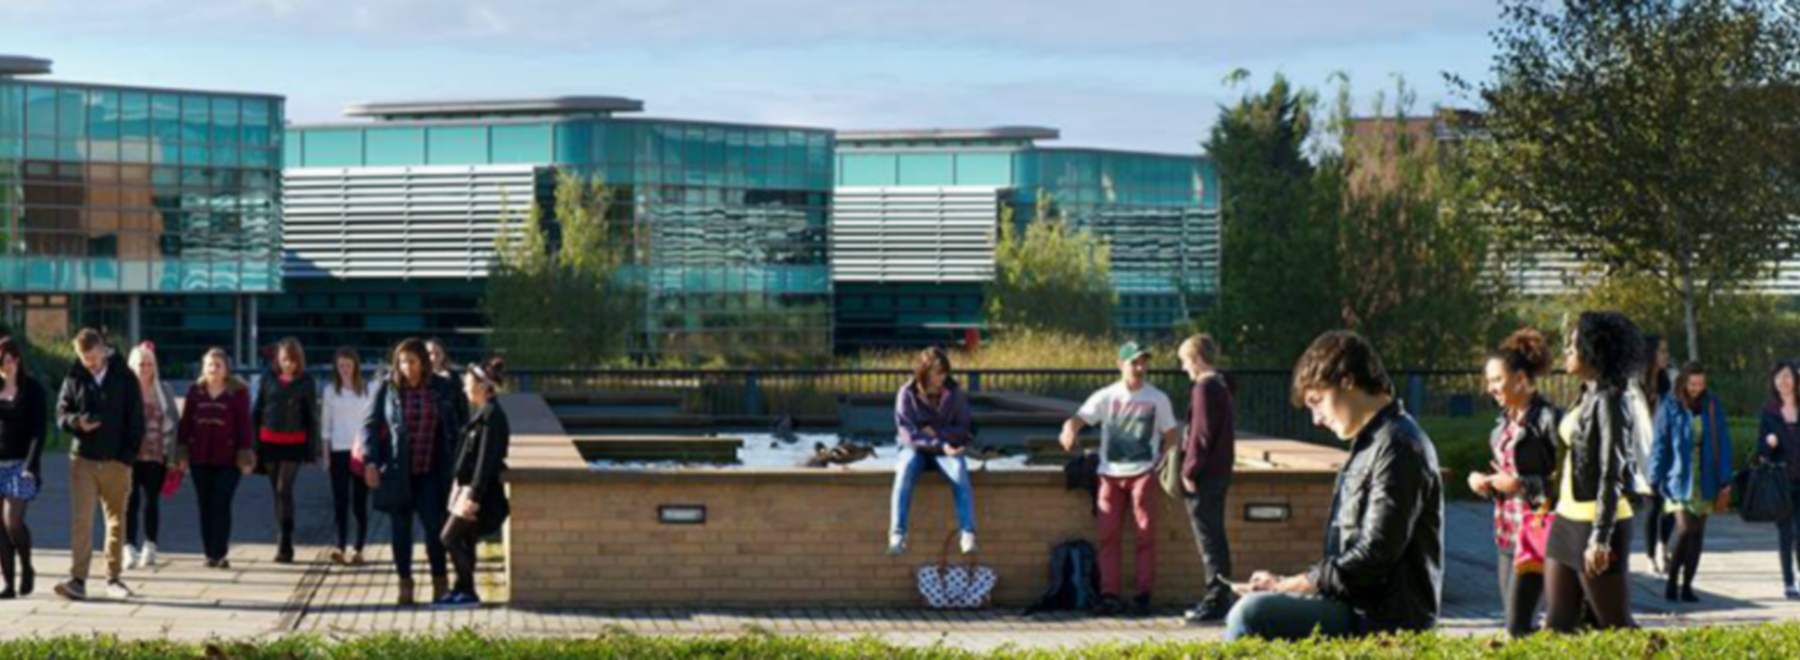 Edge Hill University header